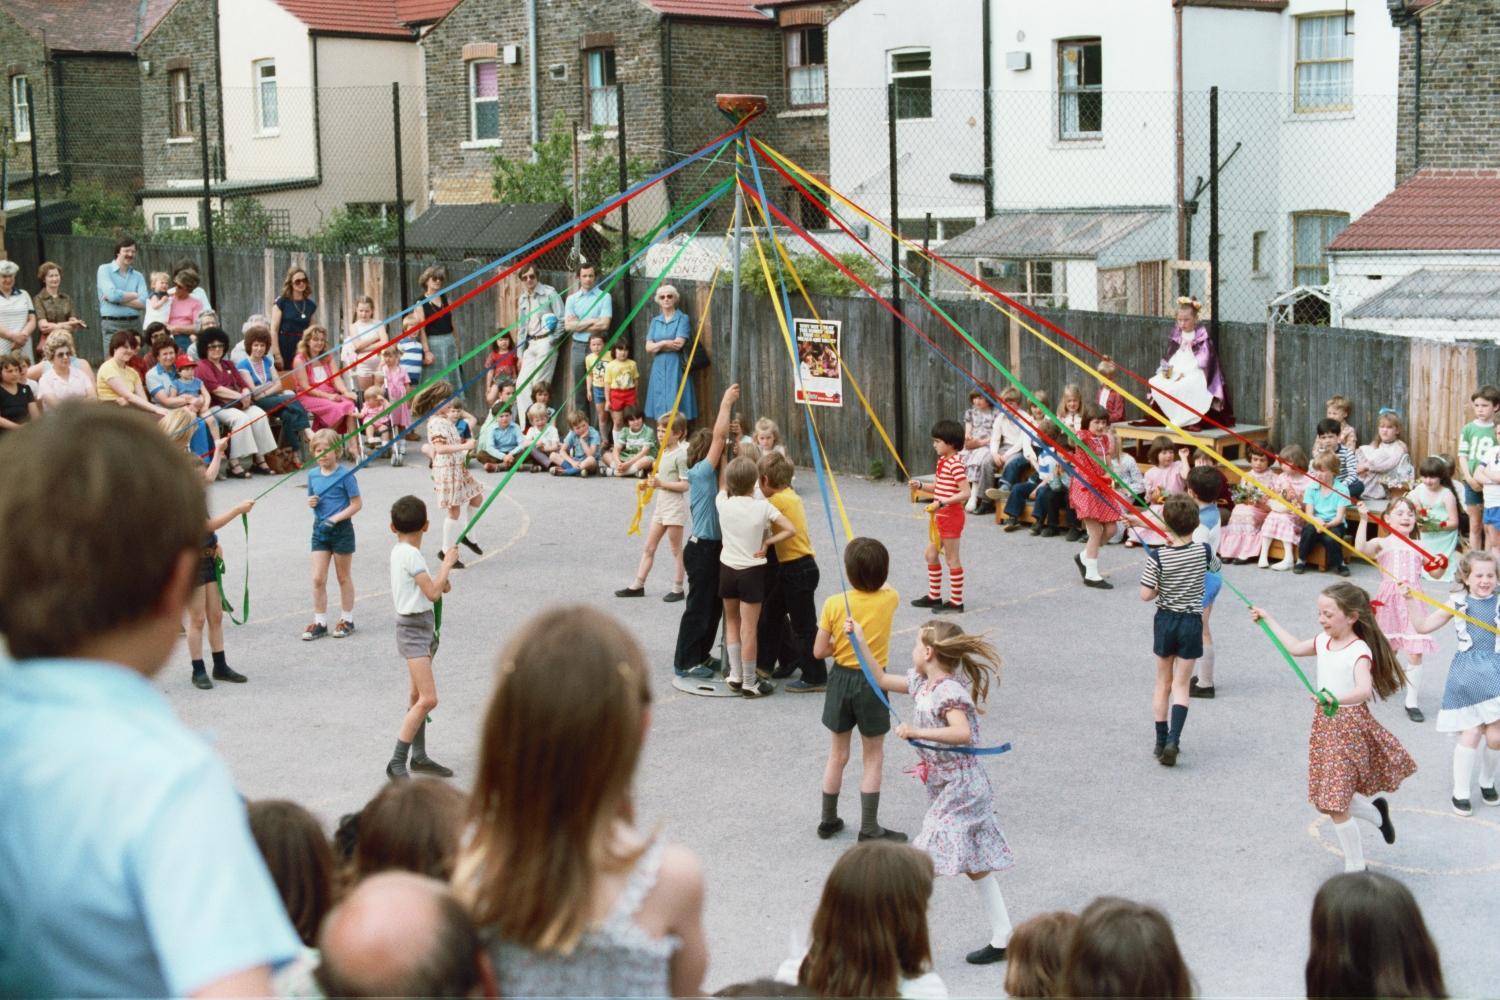 Maypole Dancing at Wells Primary School in Woodford Green, London - 1980s